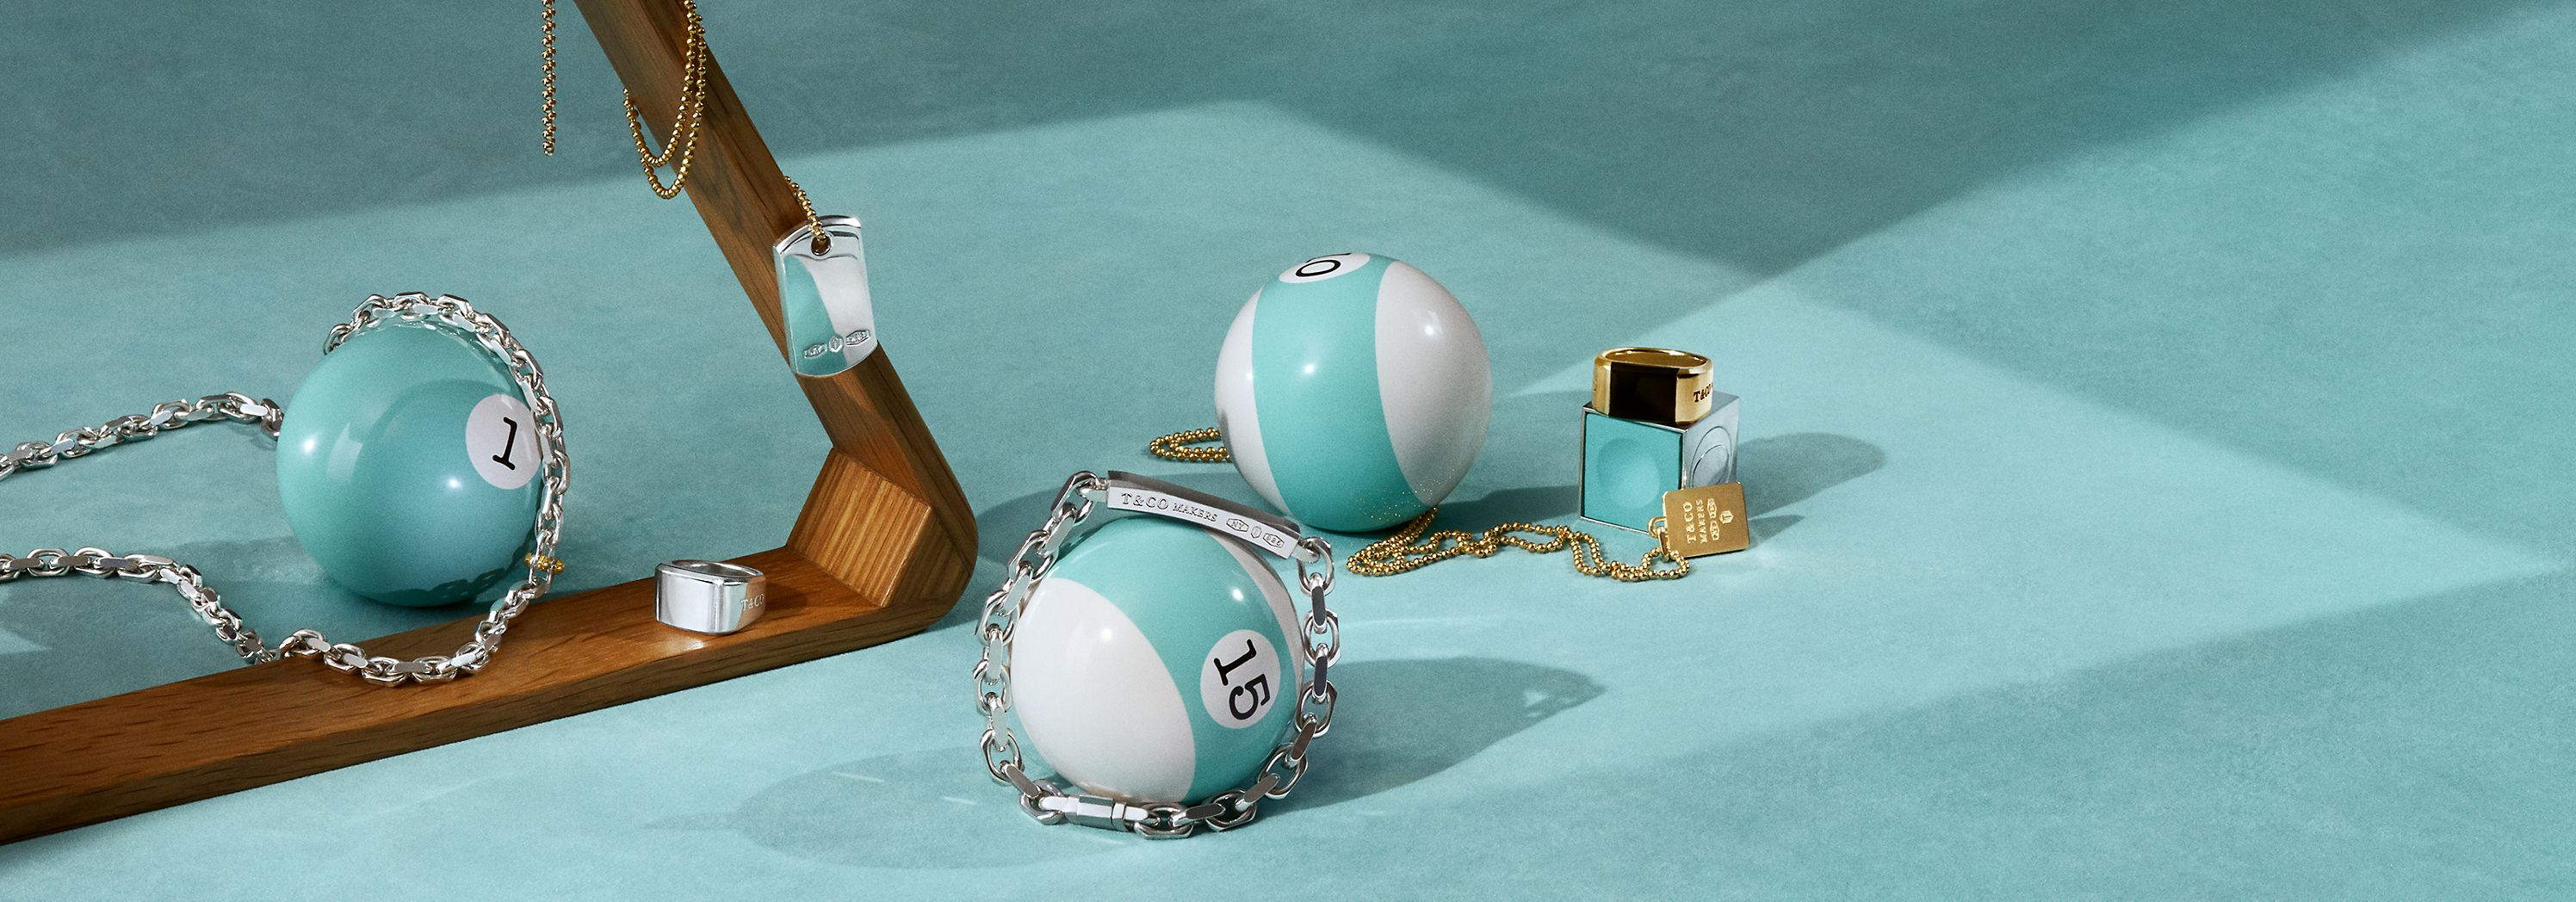 Tiffany Co Official Luxury Jewelry Gifts Accessories